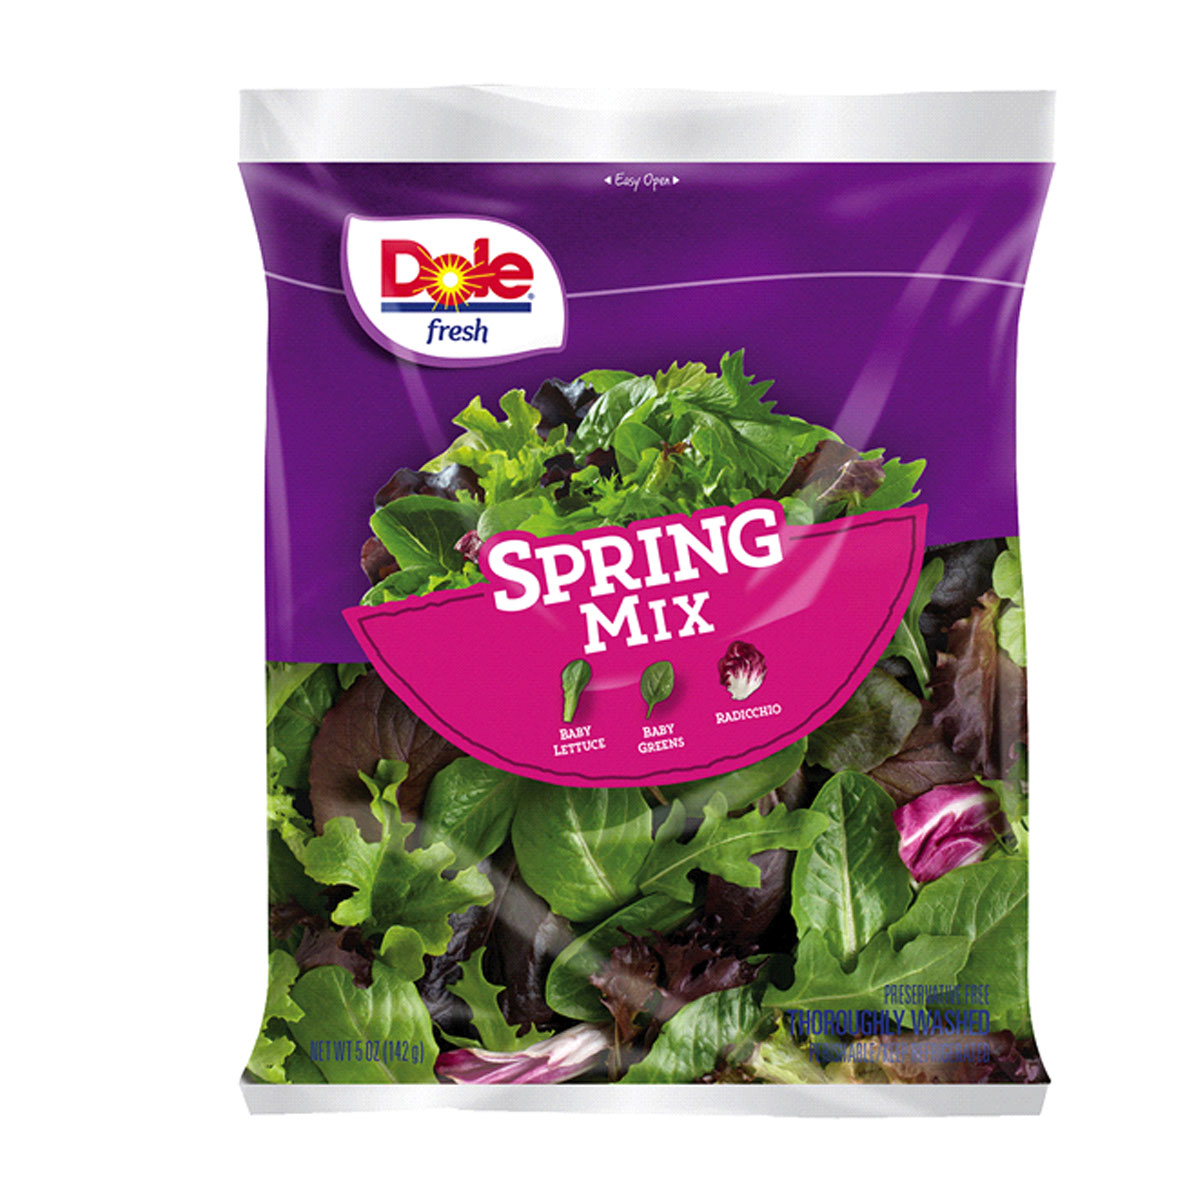 Dole Salad Mixes 5-10 oz. Selected Varieties 2/$5